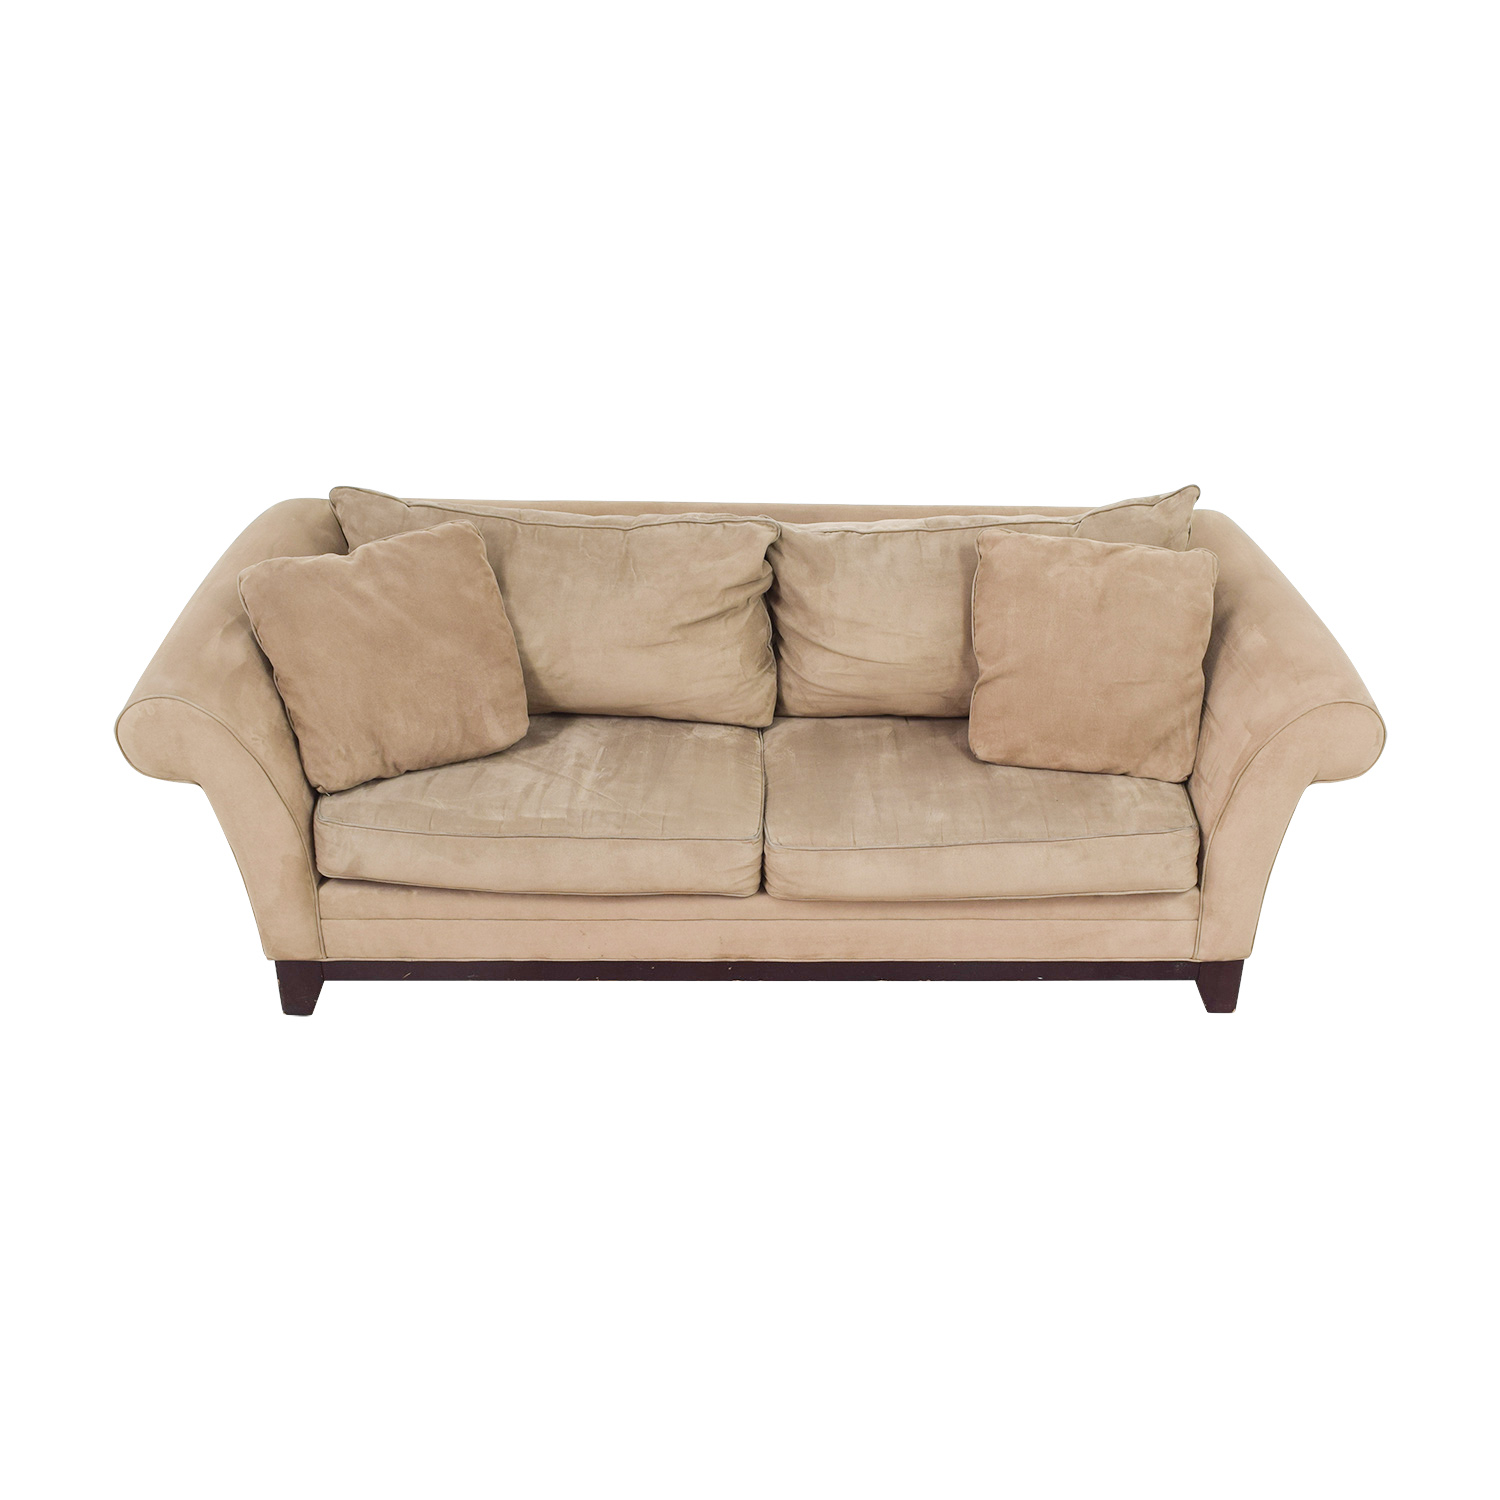 Kreiss Sofa Rolled Arm Giverny Chaise Sofa By Kreiss